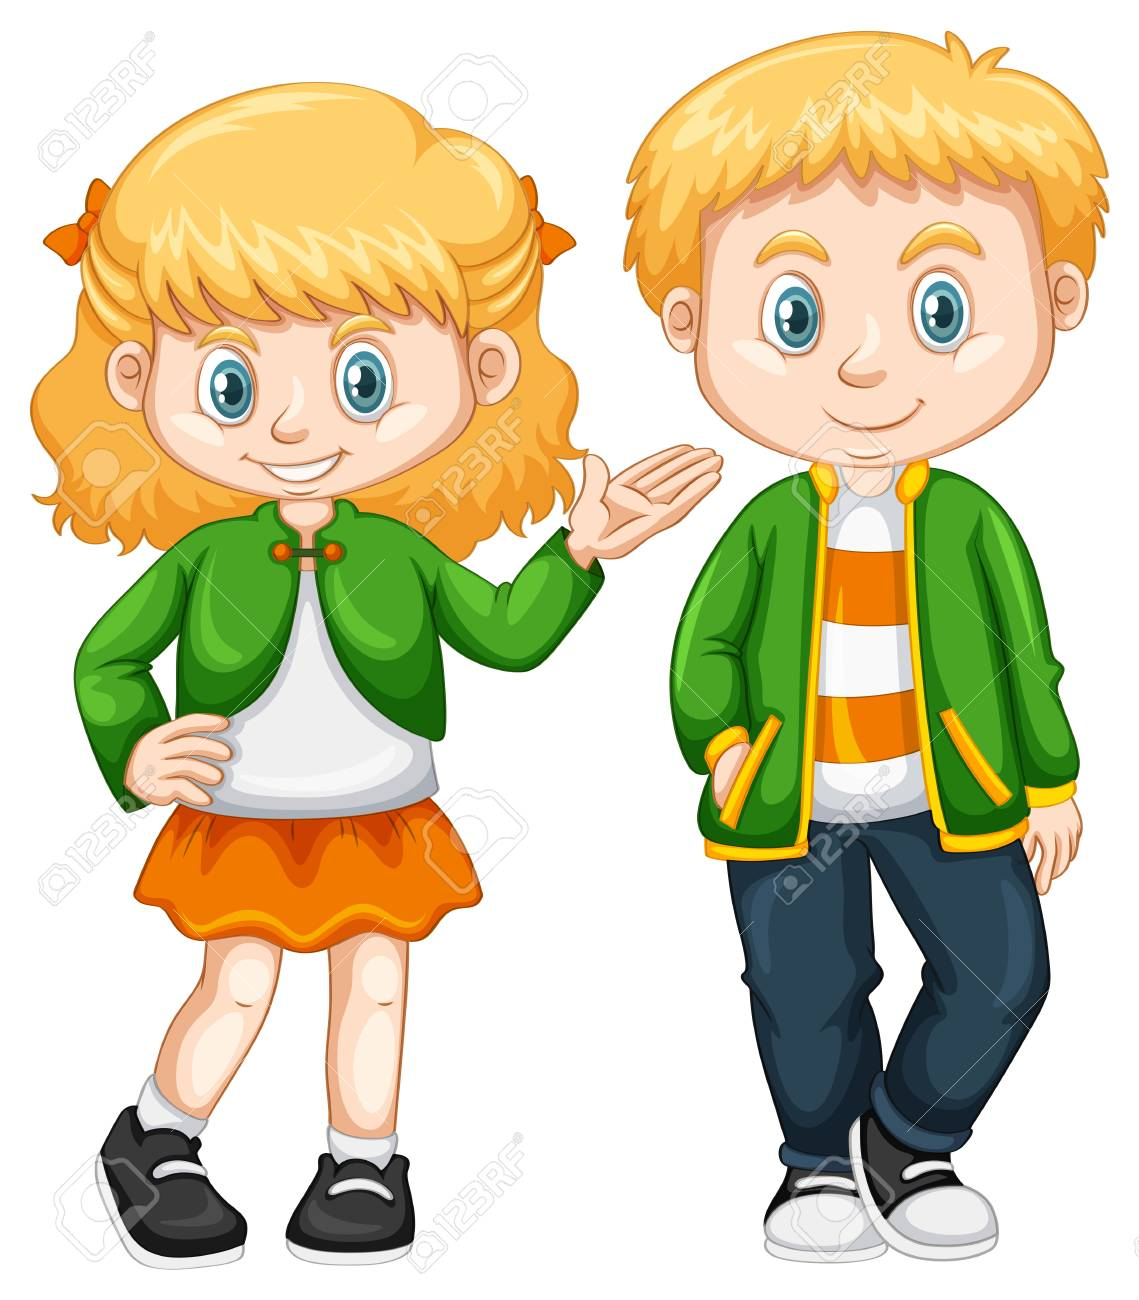 Cute girl and boy standing illustration.